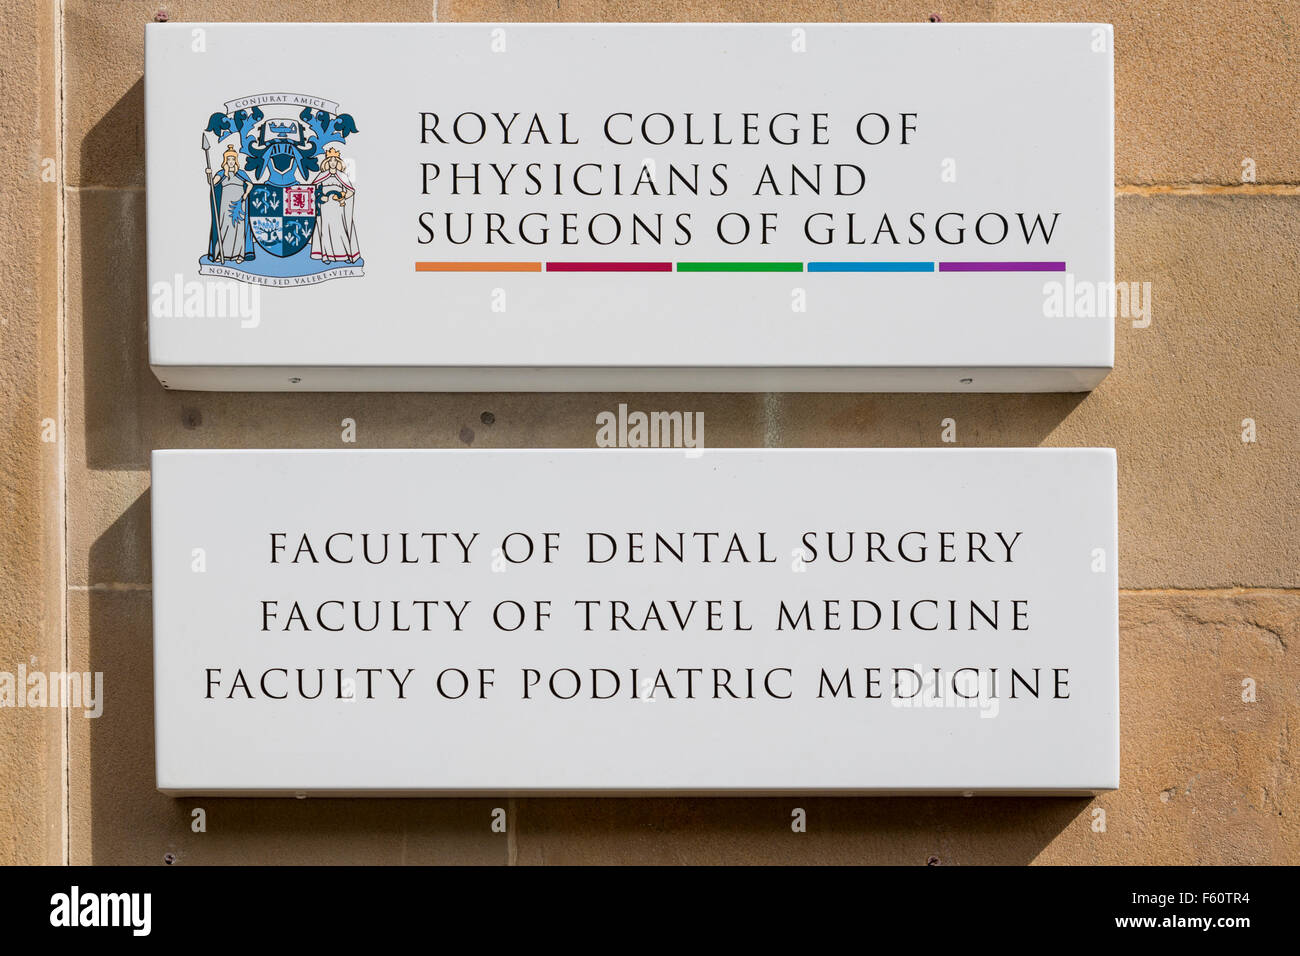 Royal College of Physicians and Surgeons of Glasgow sign, Glasgow, Scotland, UK - Stock Image